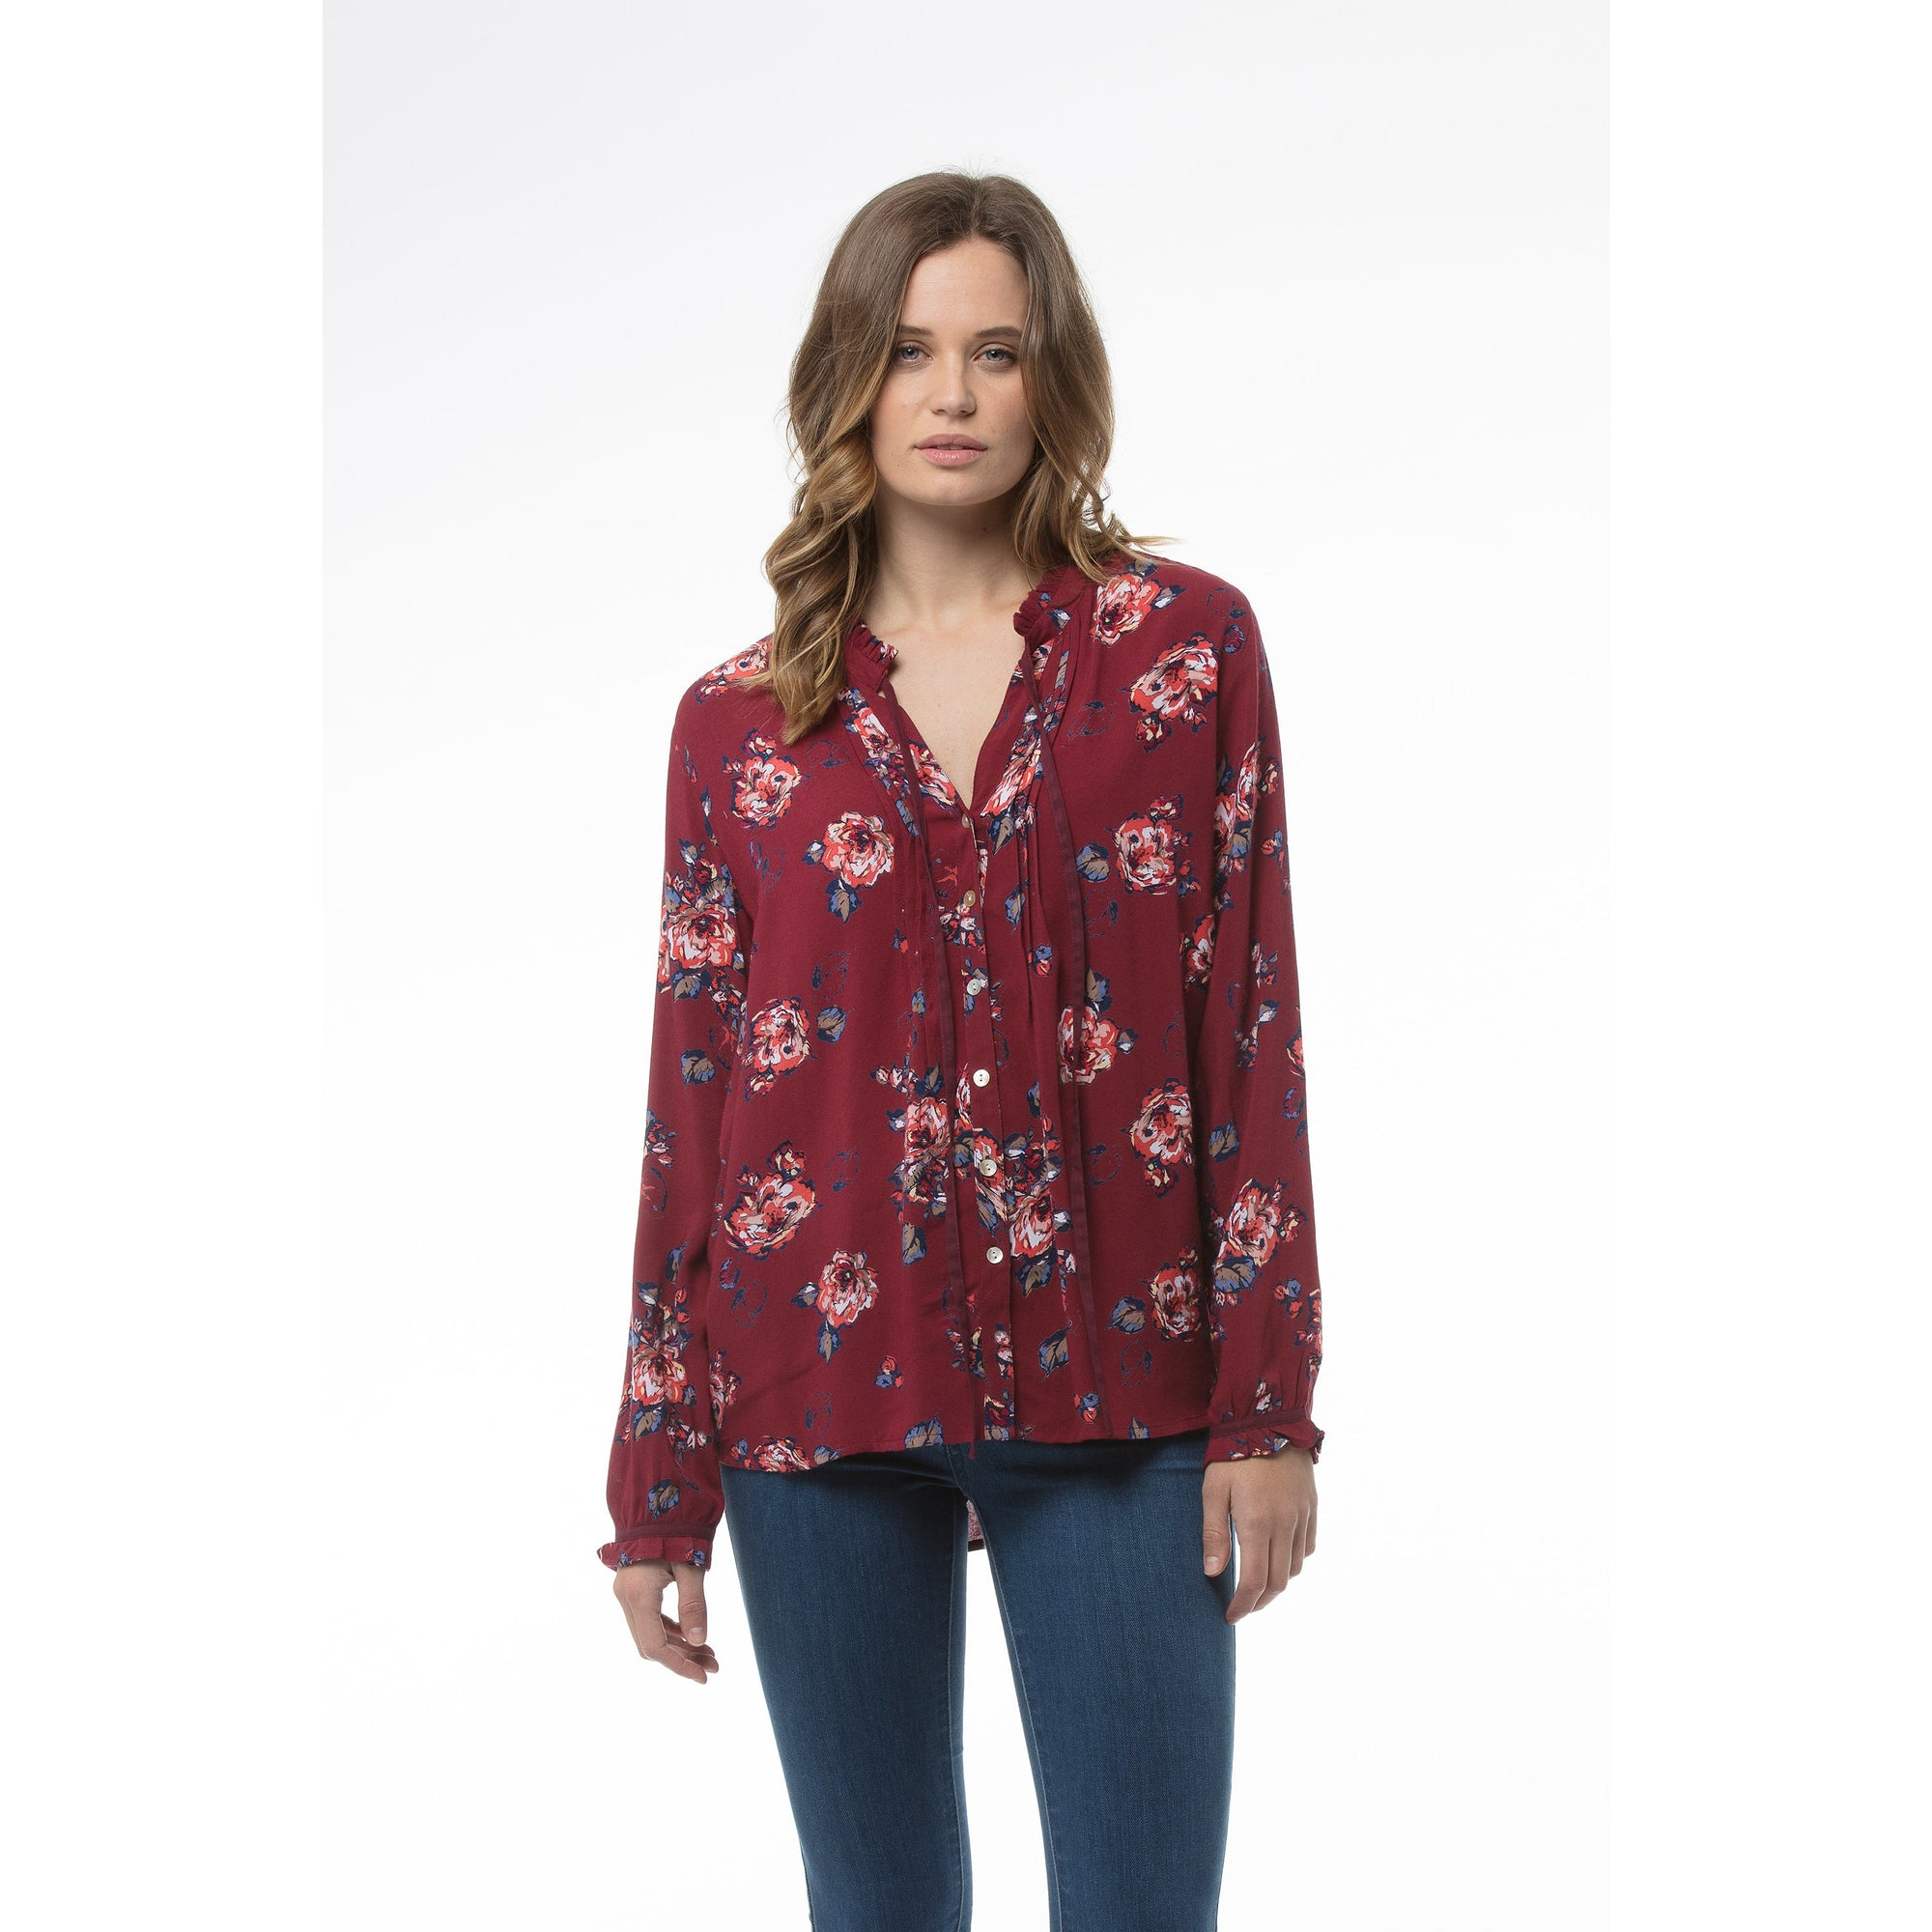 Kaja Chelsea Top in Red Print